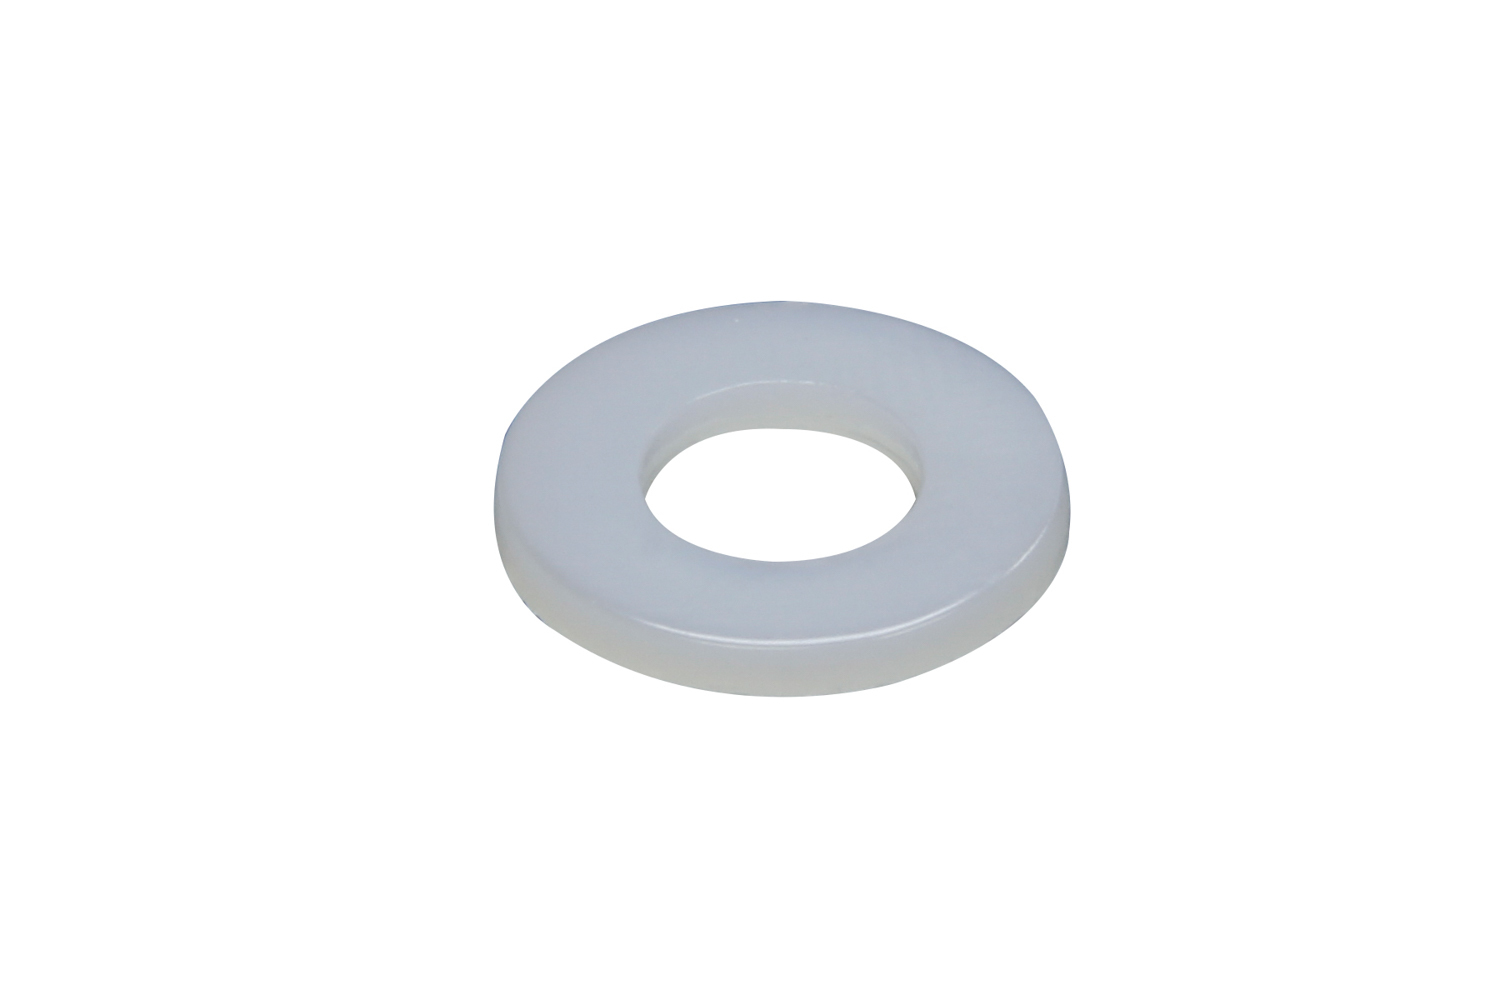 Atl Fuel Cells Teflon Washer 1/4in ID